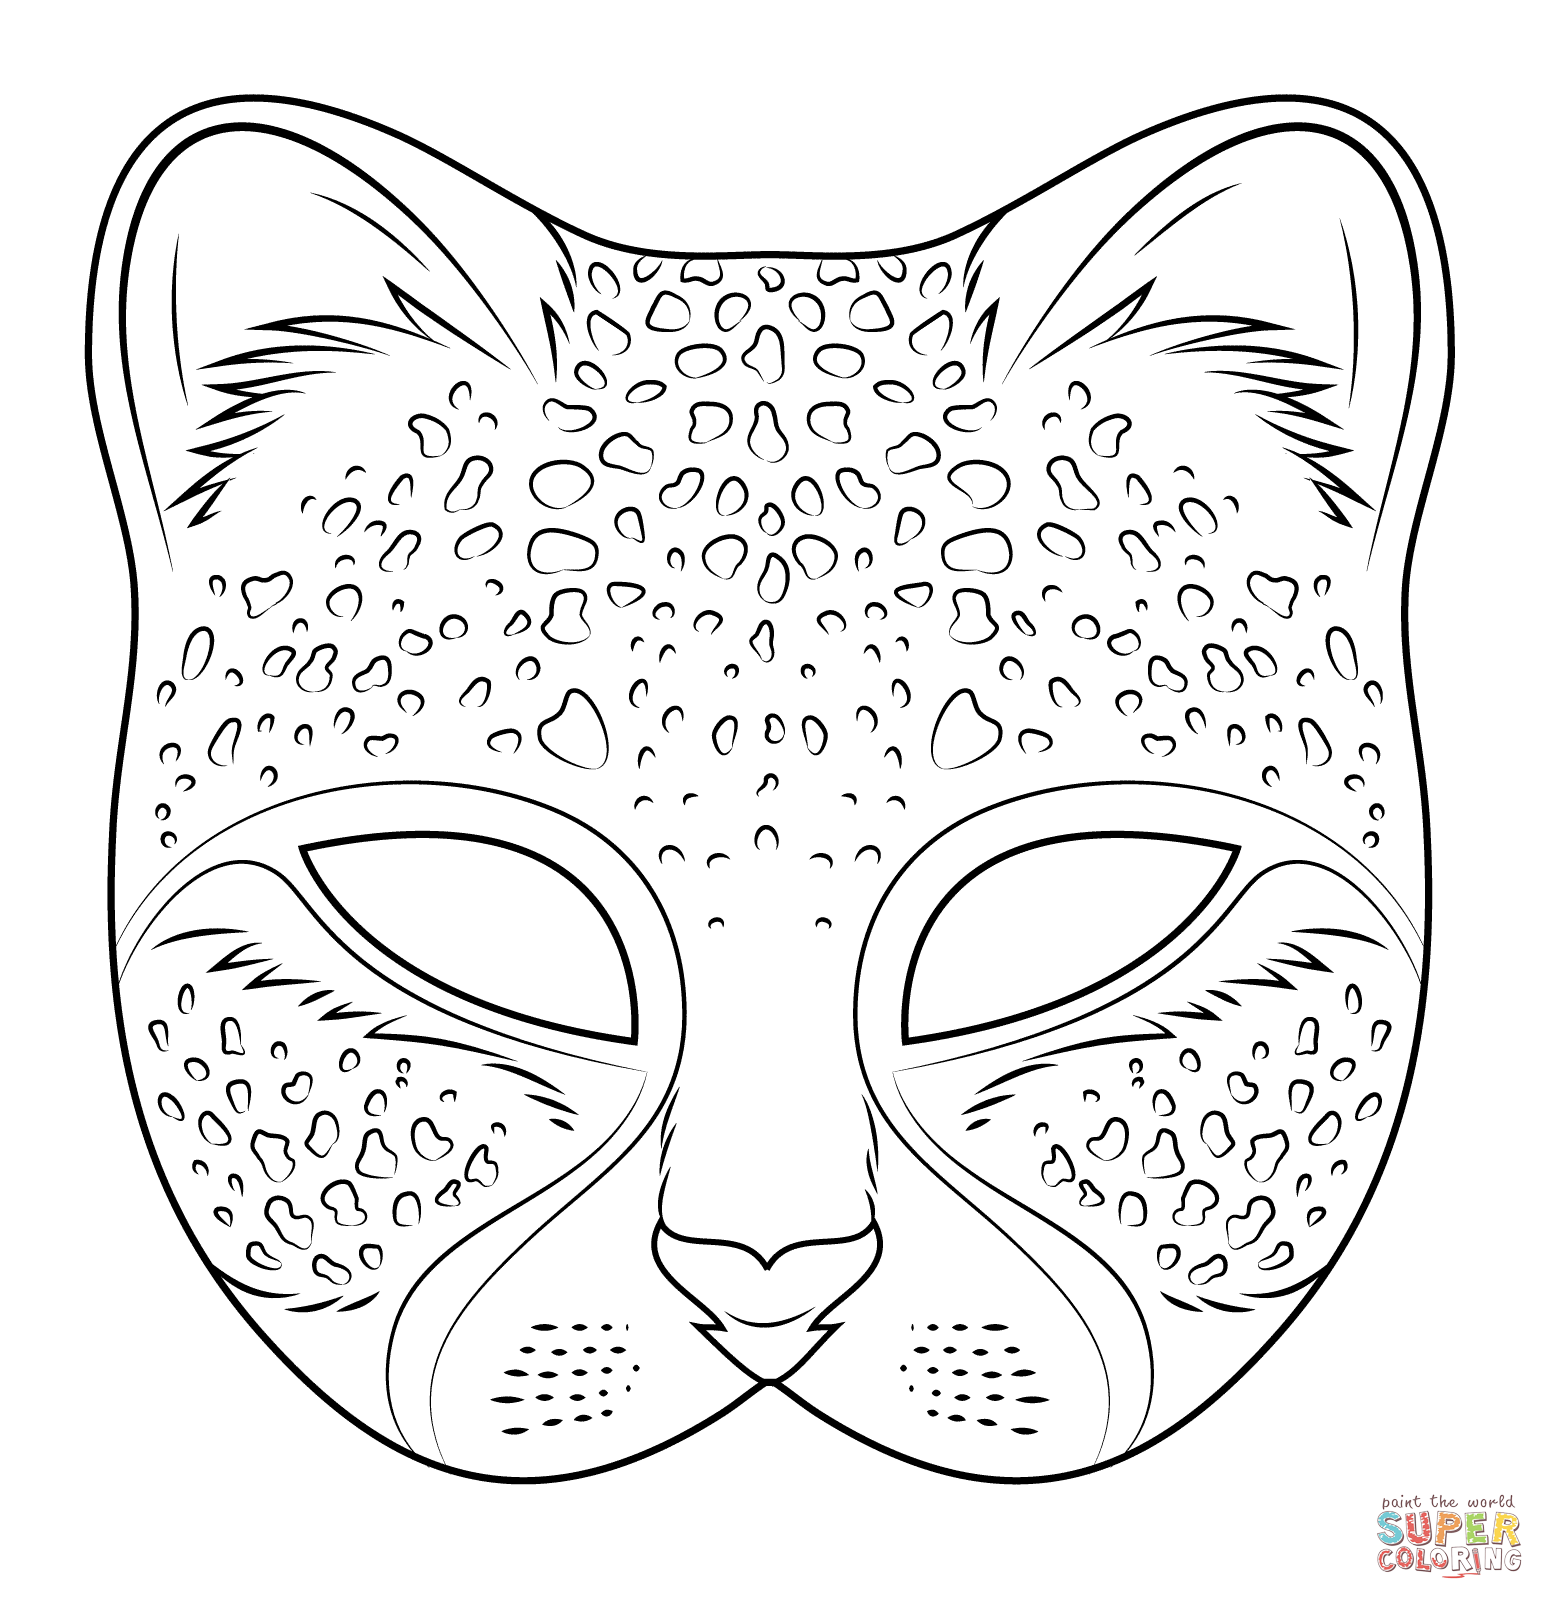 cheetah girls coloring pages - photo#23